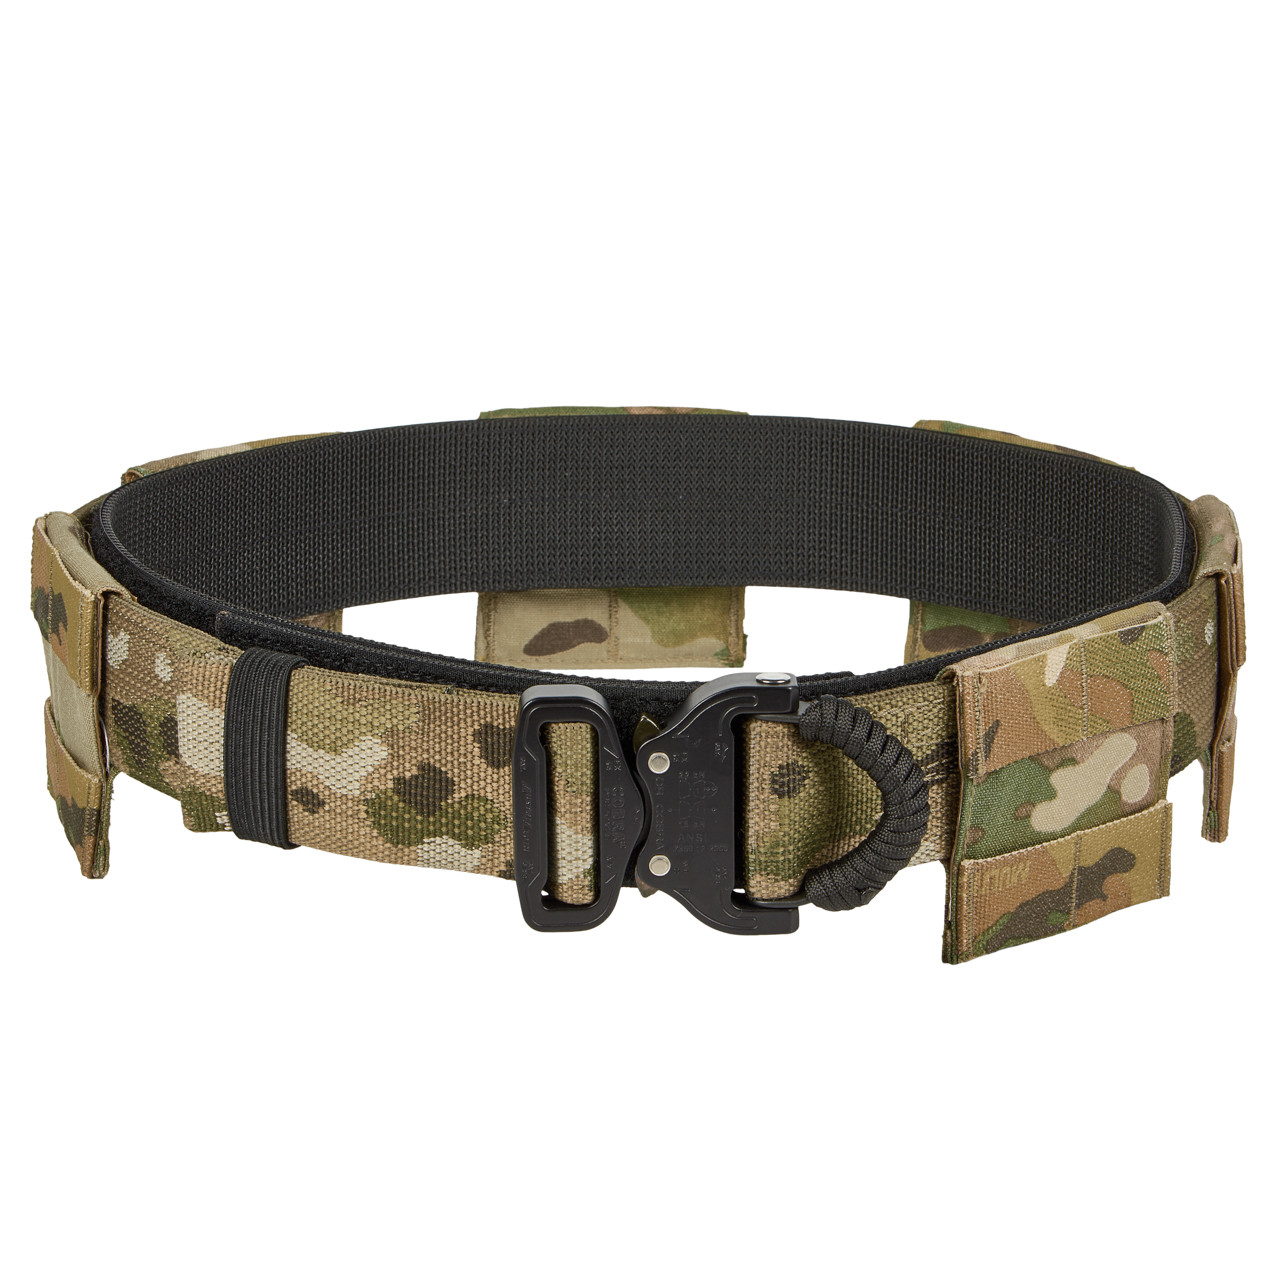 Tactical belt with molle panels